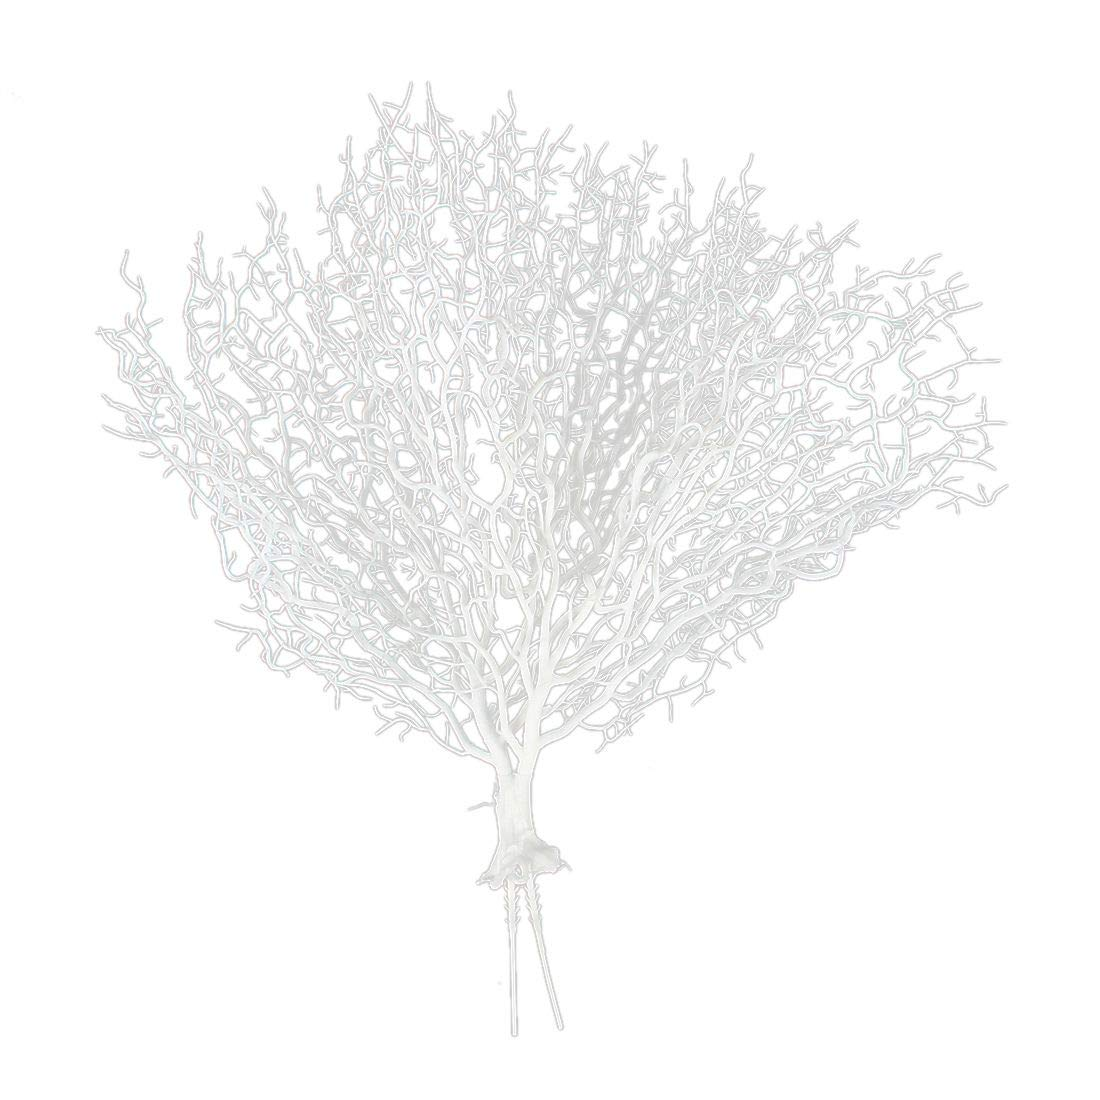 SODIAL(R) 1pcs Beautiful Artificial Fan Shaped Plastic Dried Branch Plant Home Wedding Decoration Gift (white) Long 45cm wide 50cm New